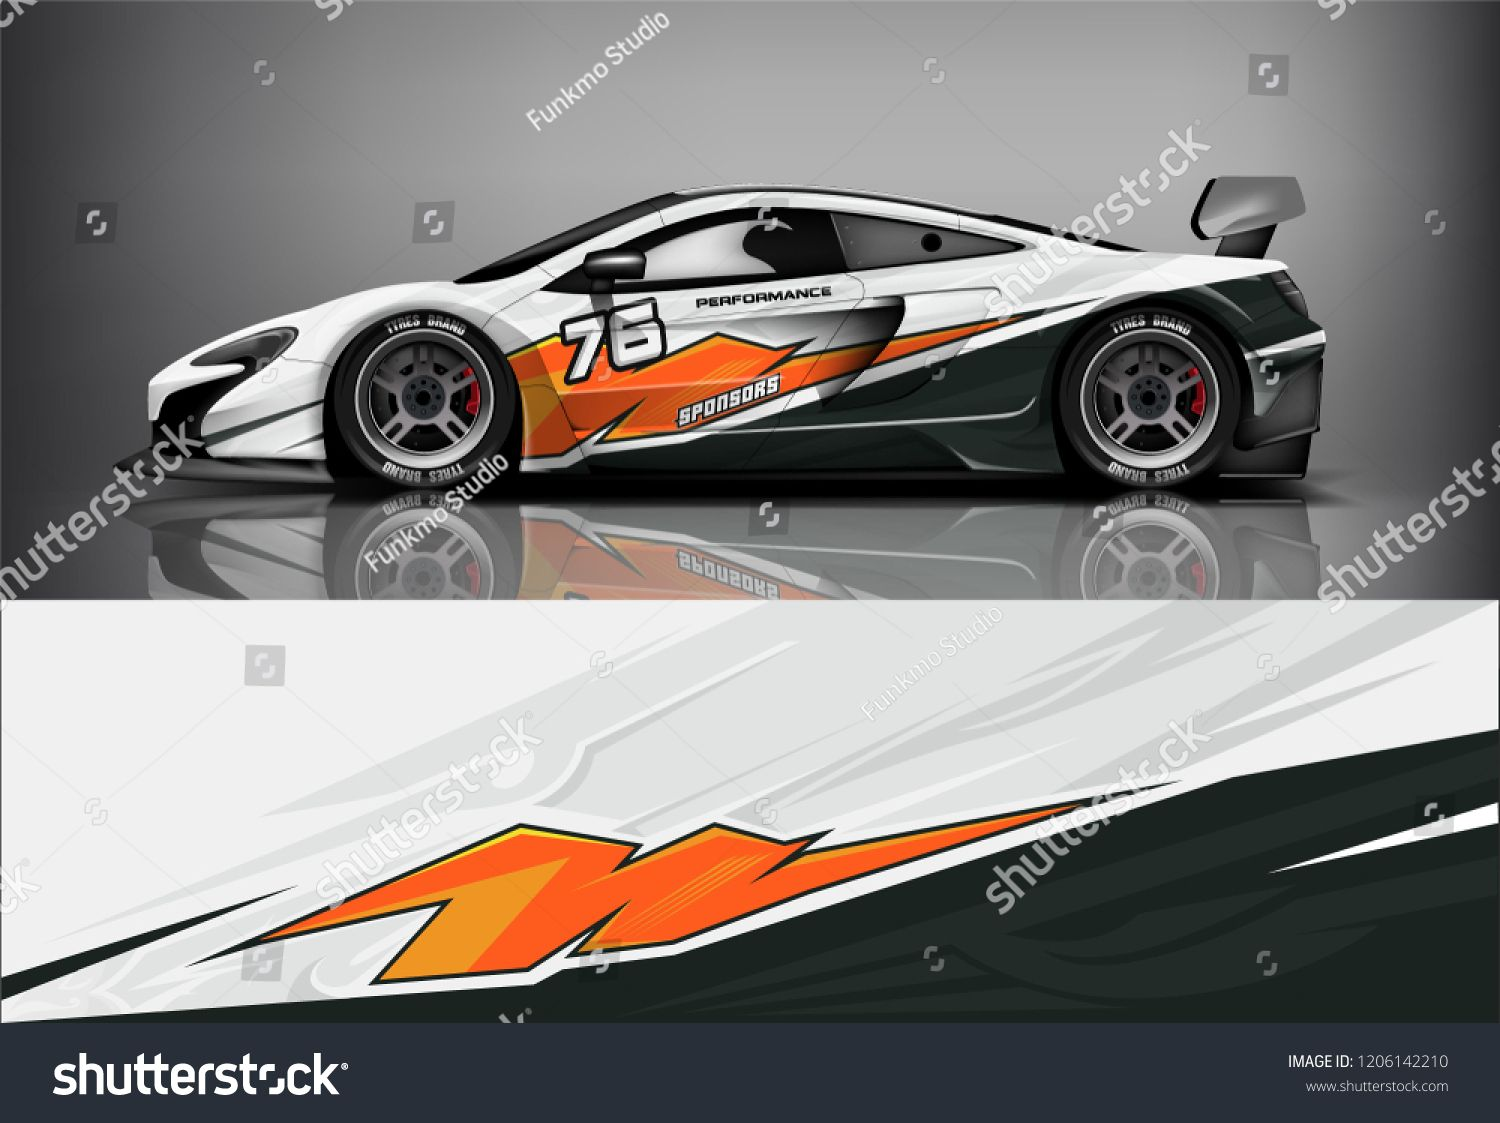 Sport Car Racing Wrap Livery Design Stock Image Download Now In 2020 Sports Car Racing Race Cars Sports Cars